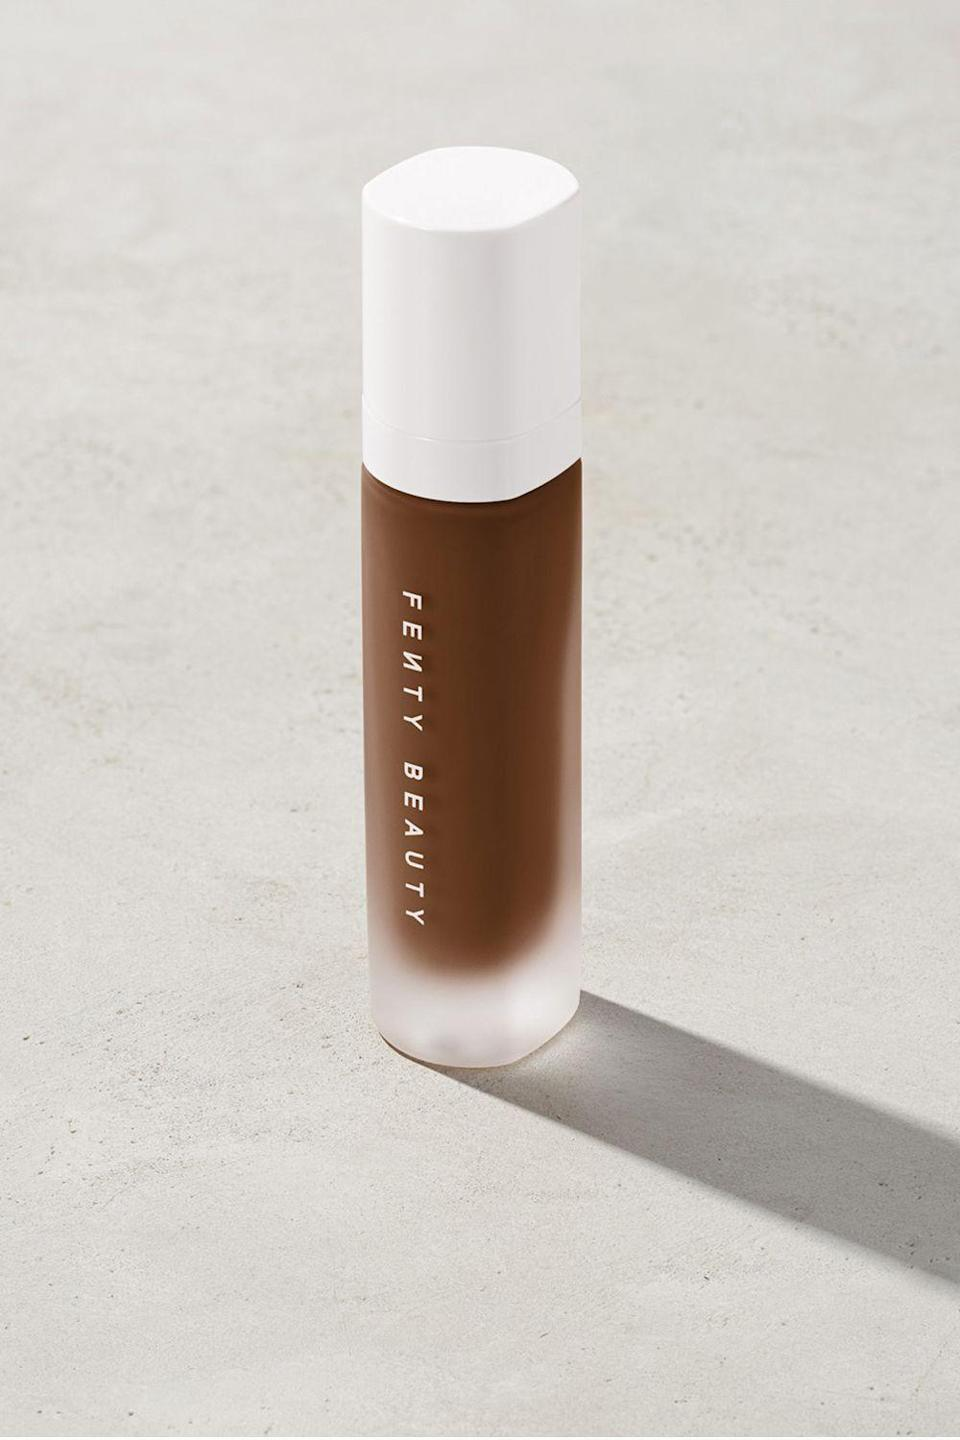 """<p><strong>Fenty Beauty</strong></p><p>fentybeauty.com</p><p><a href=""""https://go.redirectingat.com?id=74968X1596630&url=https%3A%2F%2Fwww.fentybeauty.com%2Fpro-filtr-soft-matte-longwear-foundation%2FFB30006.html&sref=https%3A%2F%2Fwww.seventeen.com%2Fbeauty%2Fg34398305%2Ffenty-beauty-sale-october-2020%2F"""" rel=""""nofollow noopener"""" target=""""_blank"""" data-ylk=""""slk:SHOP IT"""" class=""""link rapid-noclick-resp"""">SHOP IT </a></p><p><strong><del>$35</del> $23.62 (33% off)</strong></p><p>Behind every great makeup look (literally) is a reliable foundation. Not only does this bestseller have a silky smooth matte finish, it's also available in a range of shades.</p>"""